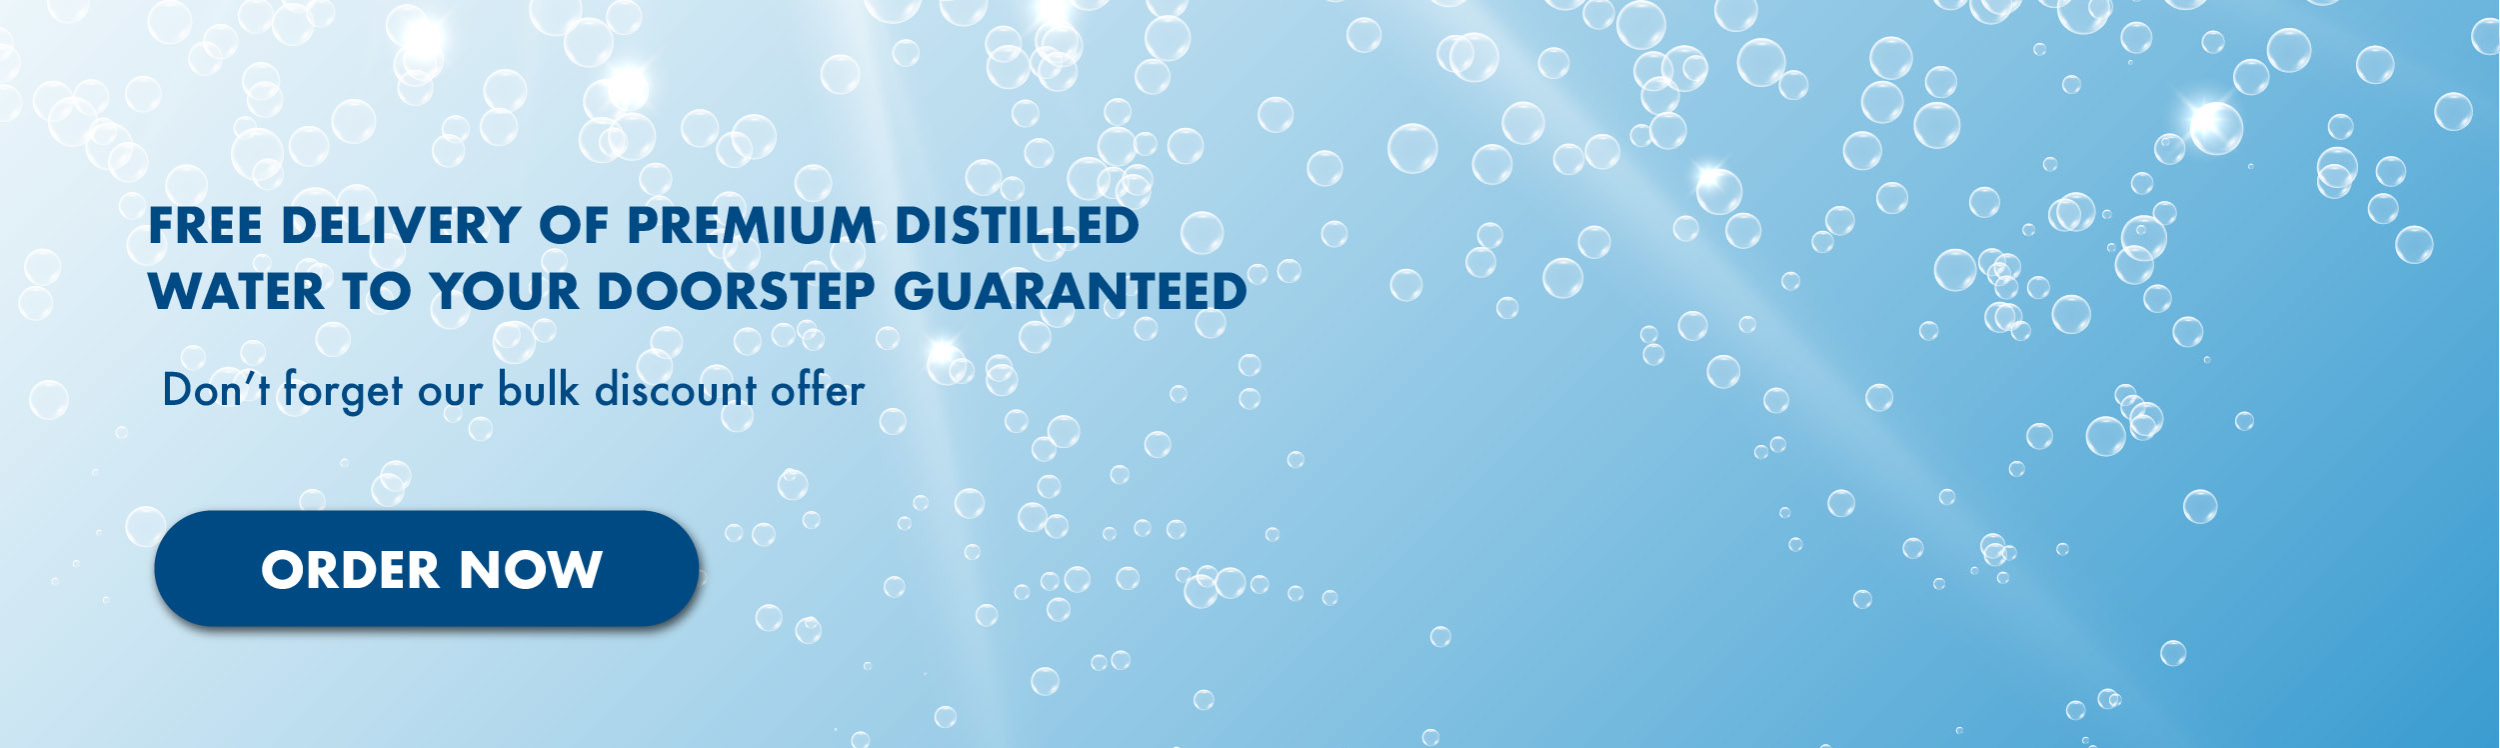 distilled water delivery banner 1 2500x748 c Distilled Water | Delivered Direct across the UK